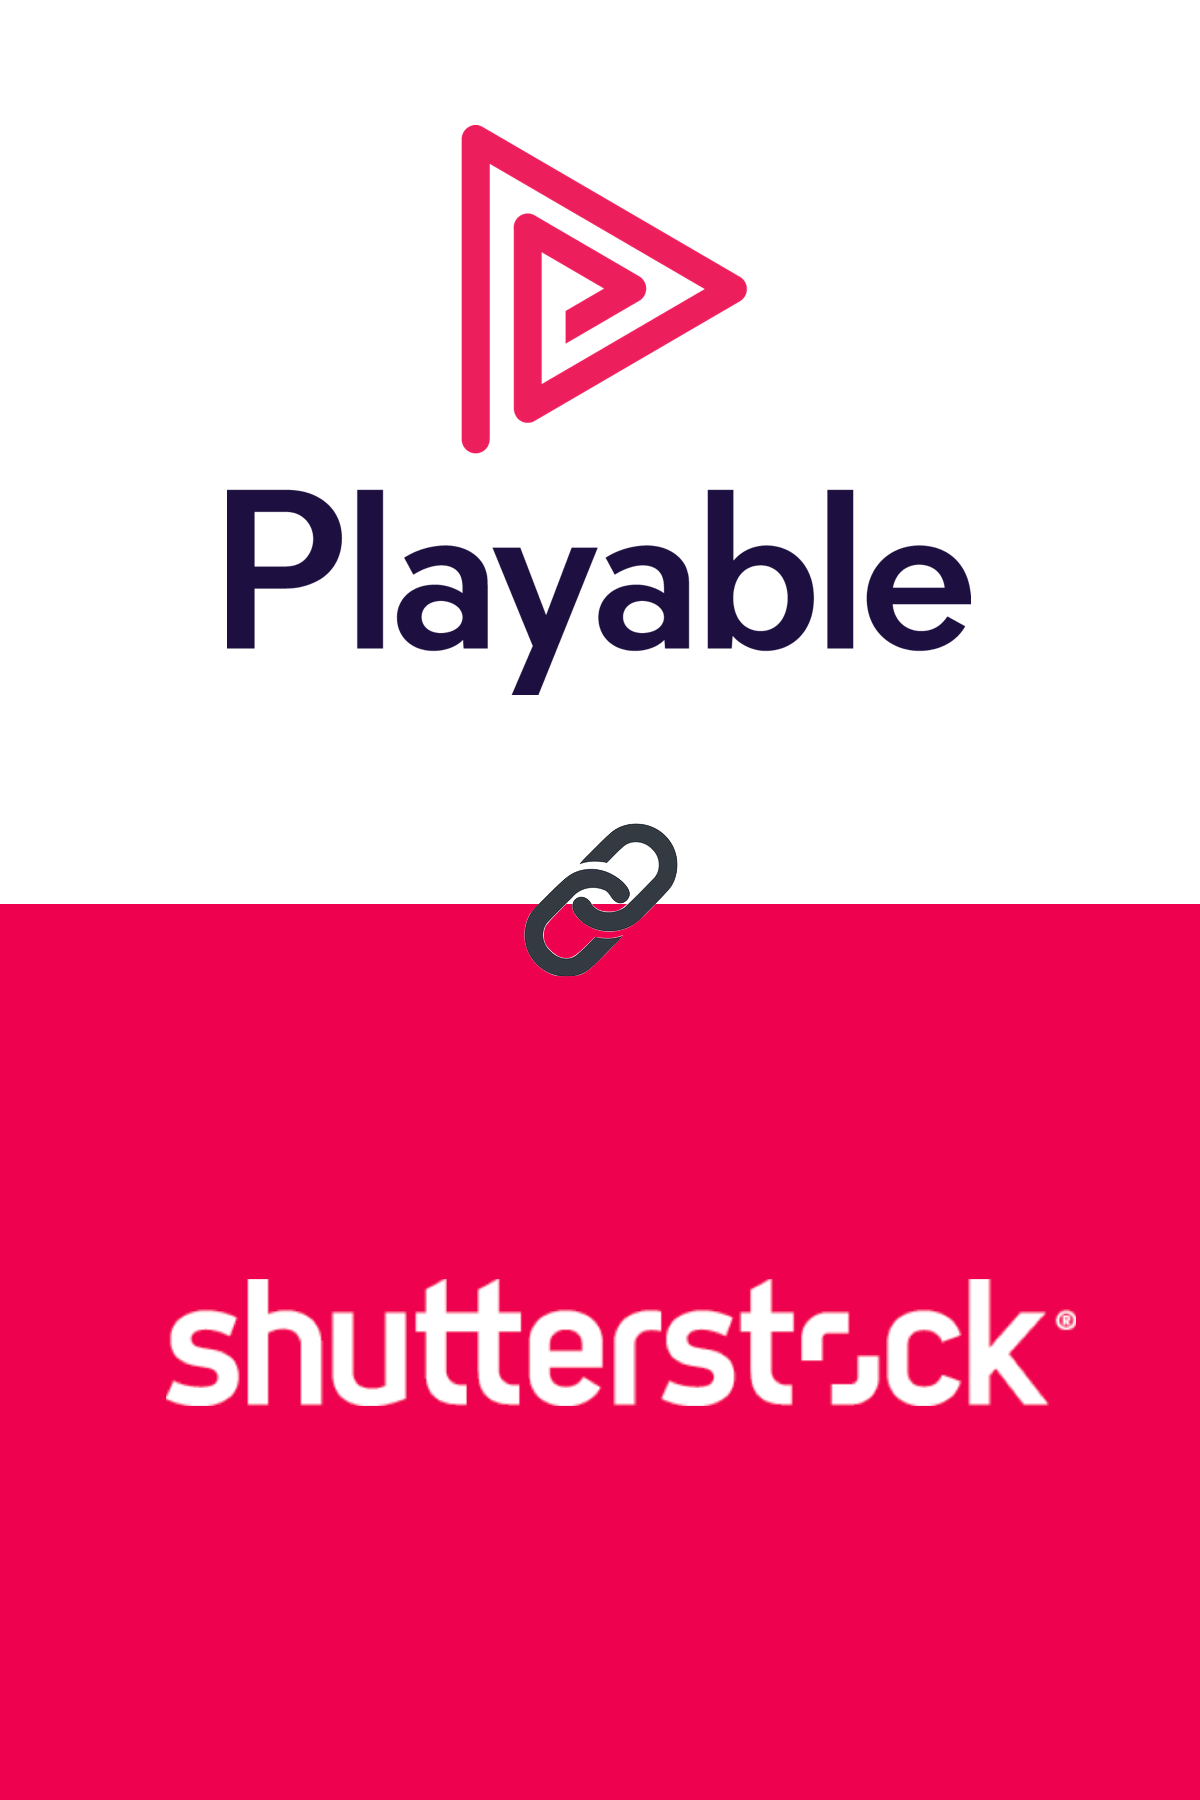 Playable Integrates Shutterstock API to Make  Stock Video Library Available to $20B Email Marketing Industry